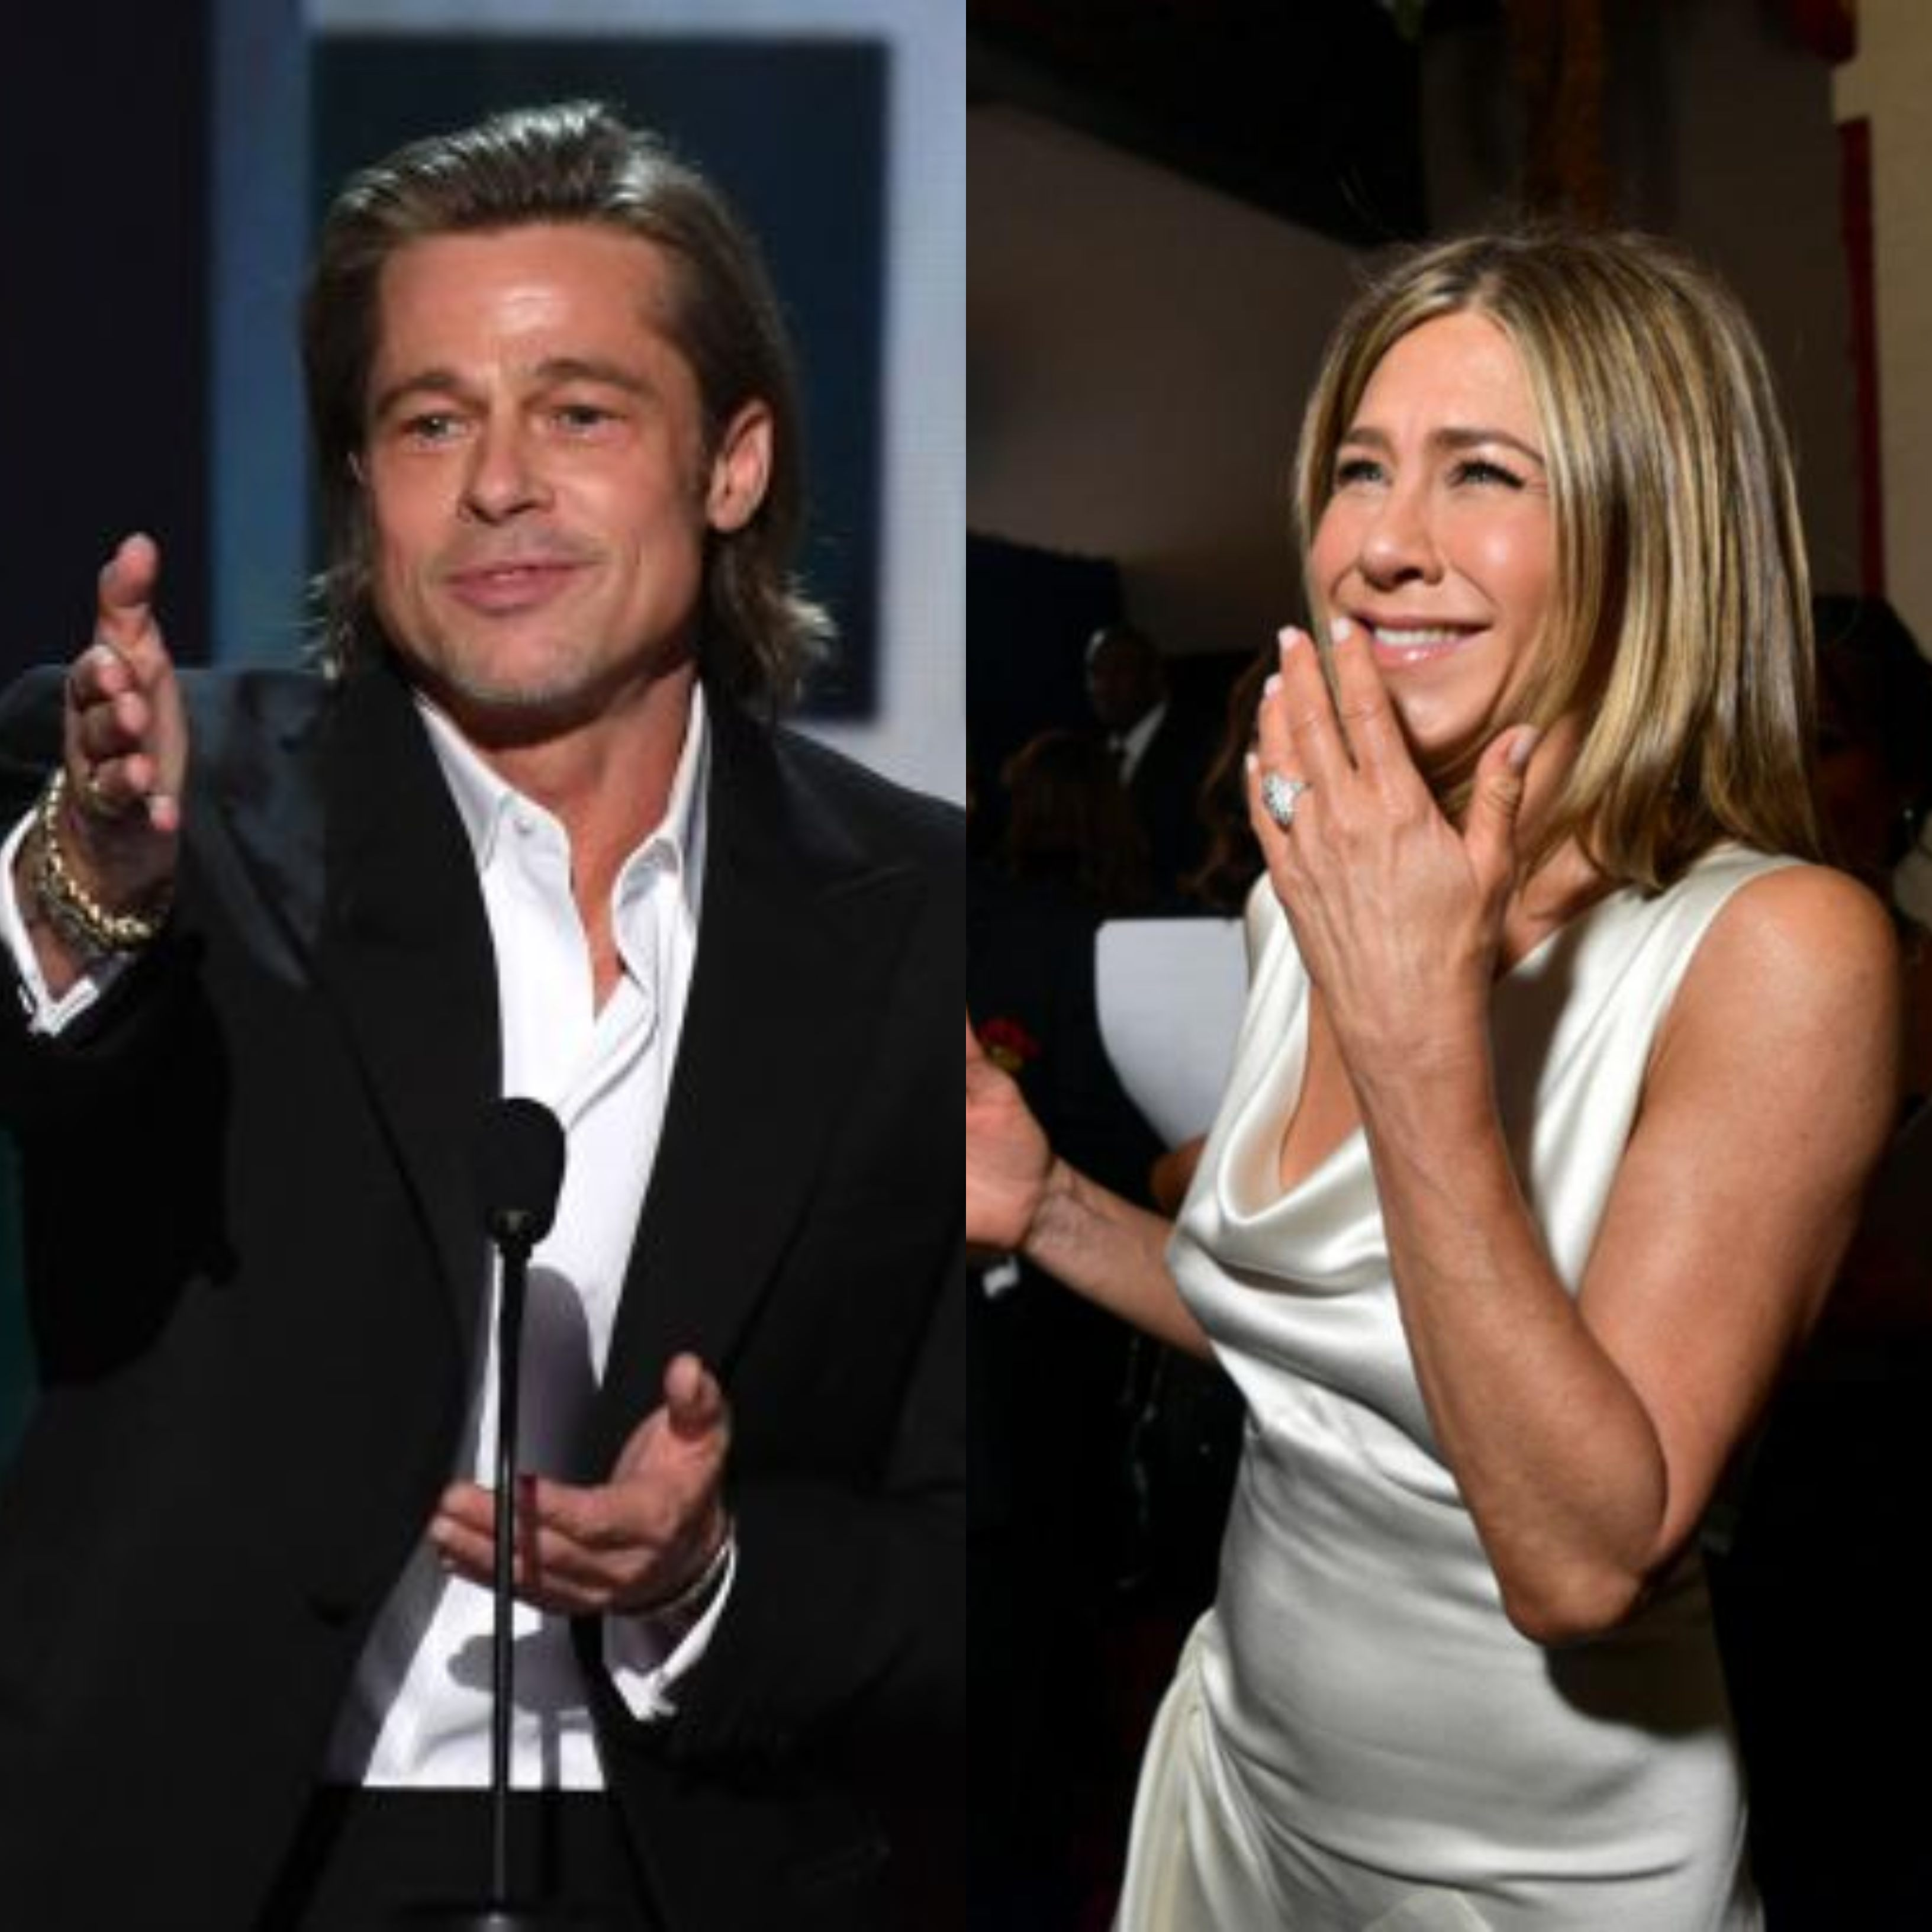 brad pitt takes a dig at marriage with angelina jolie during sag speech